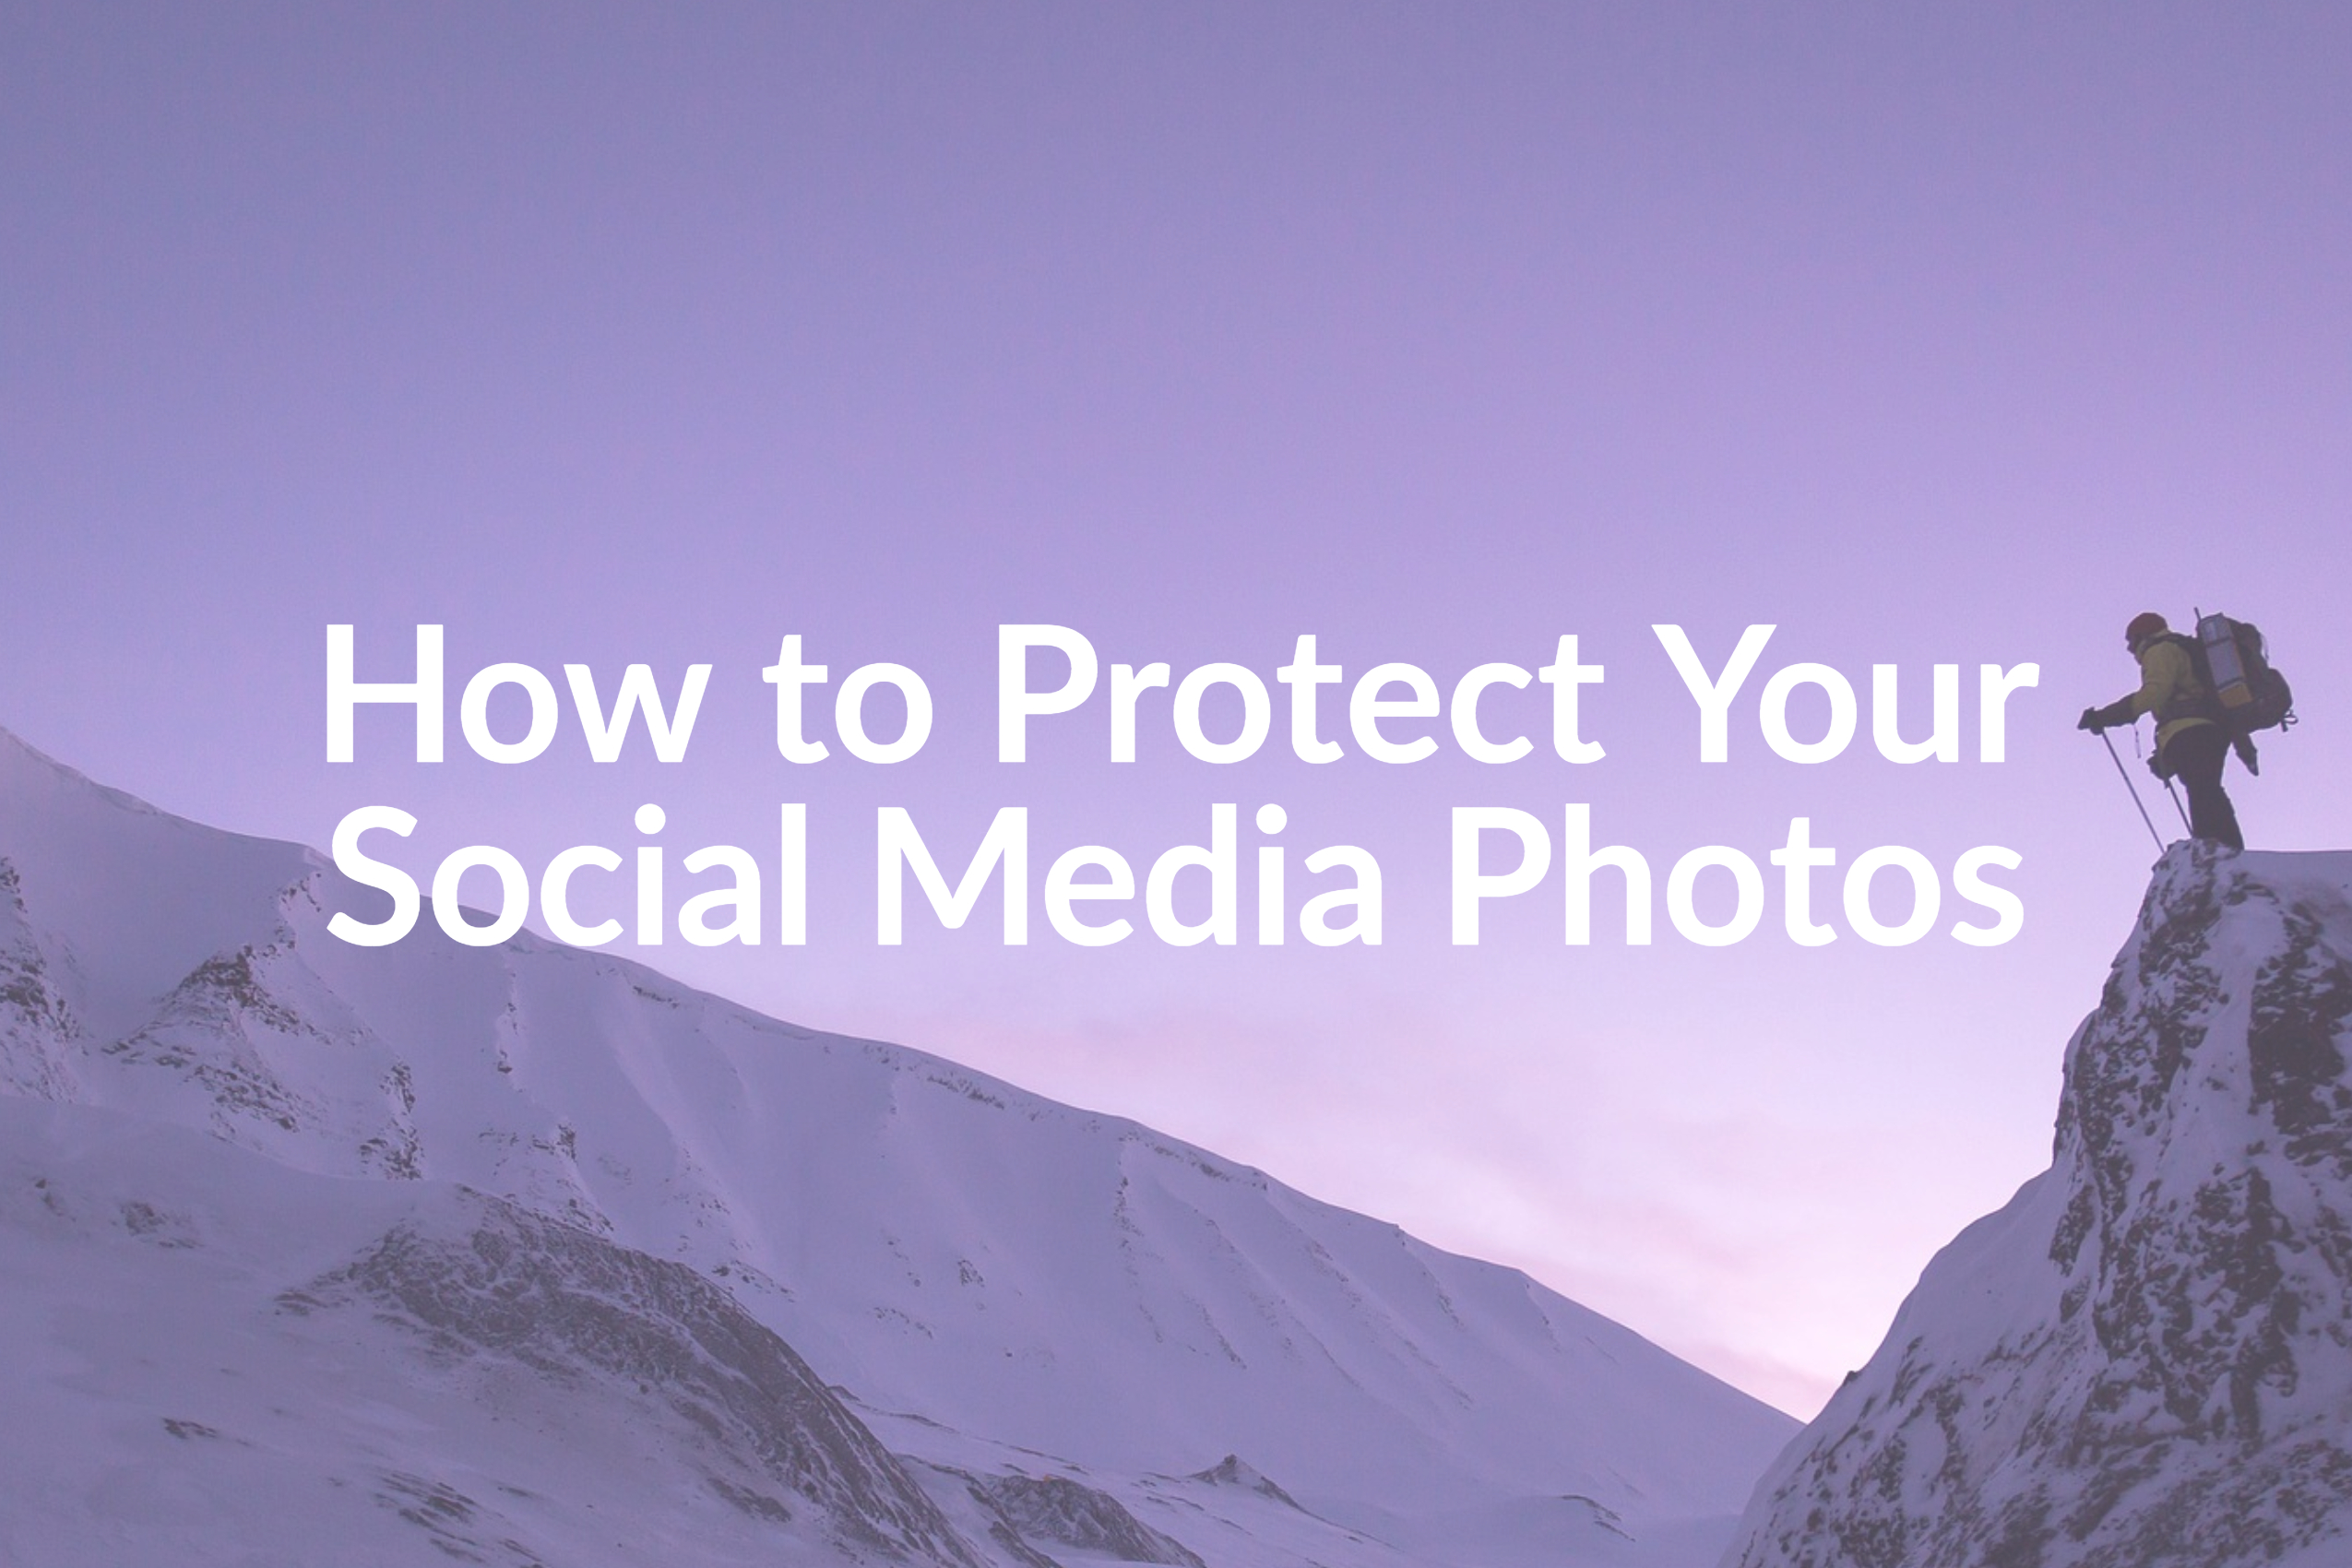 4 Little Known Ways to Protect Your Photos on Social Media